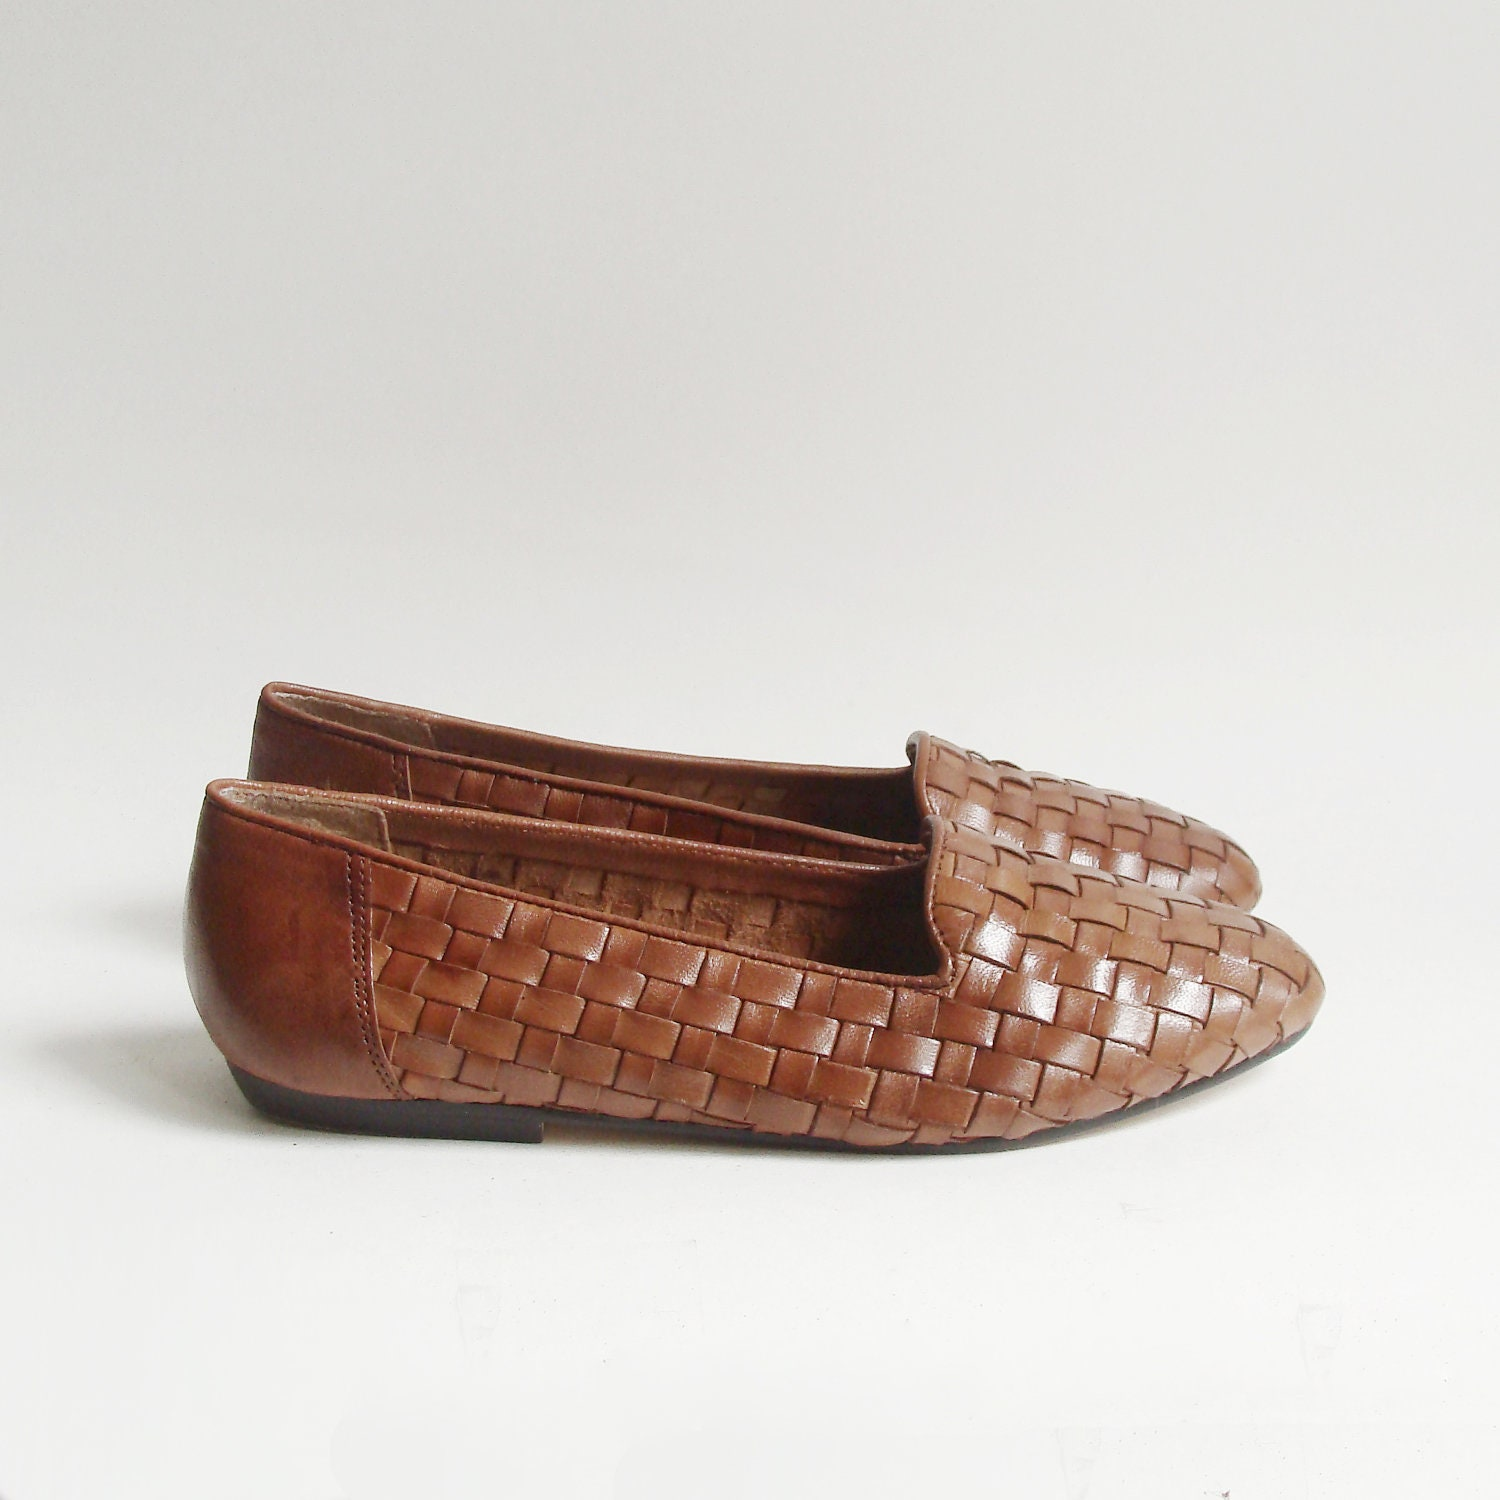 shoes 6 5 woven leather flats toffee by